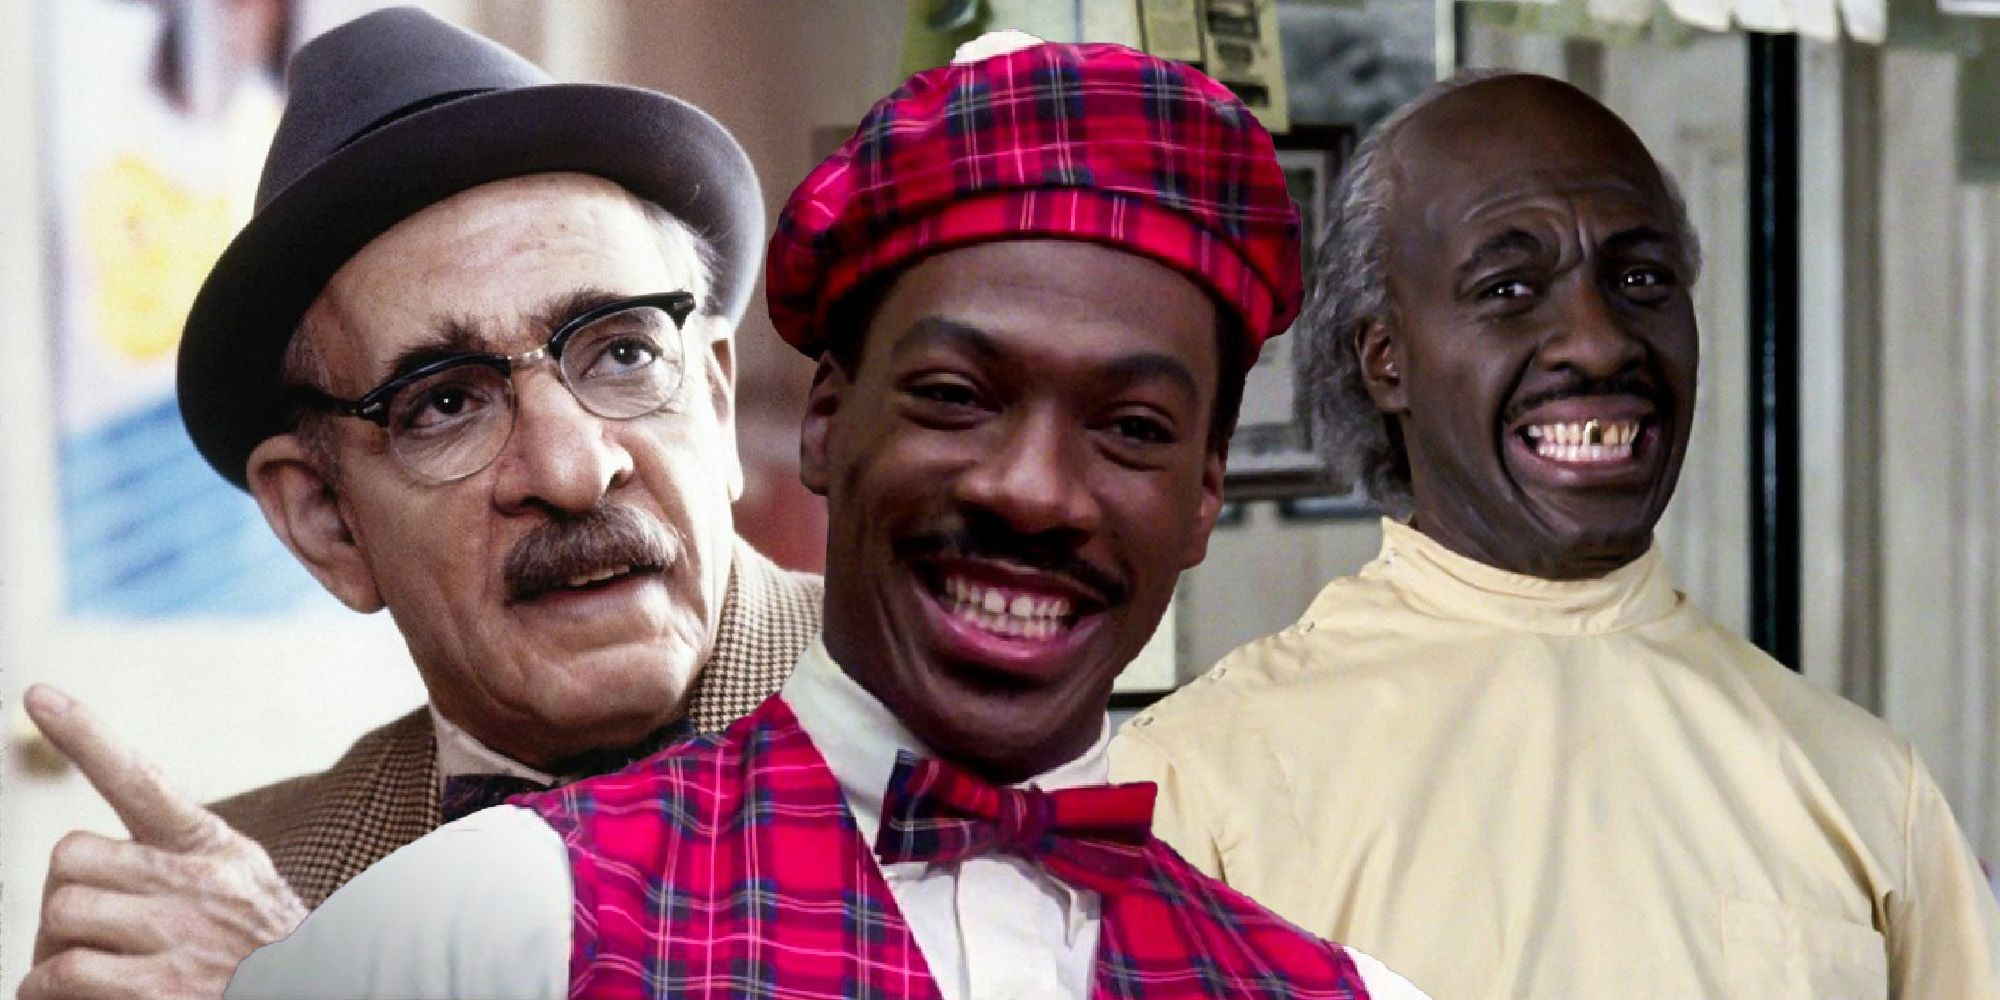 Coming To America: Every Character Eddie Murphy Played